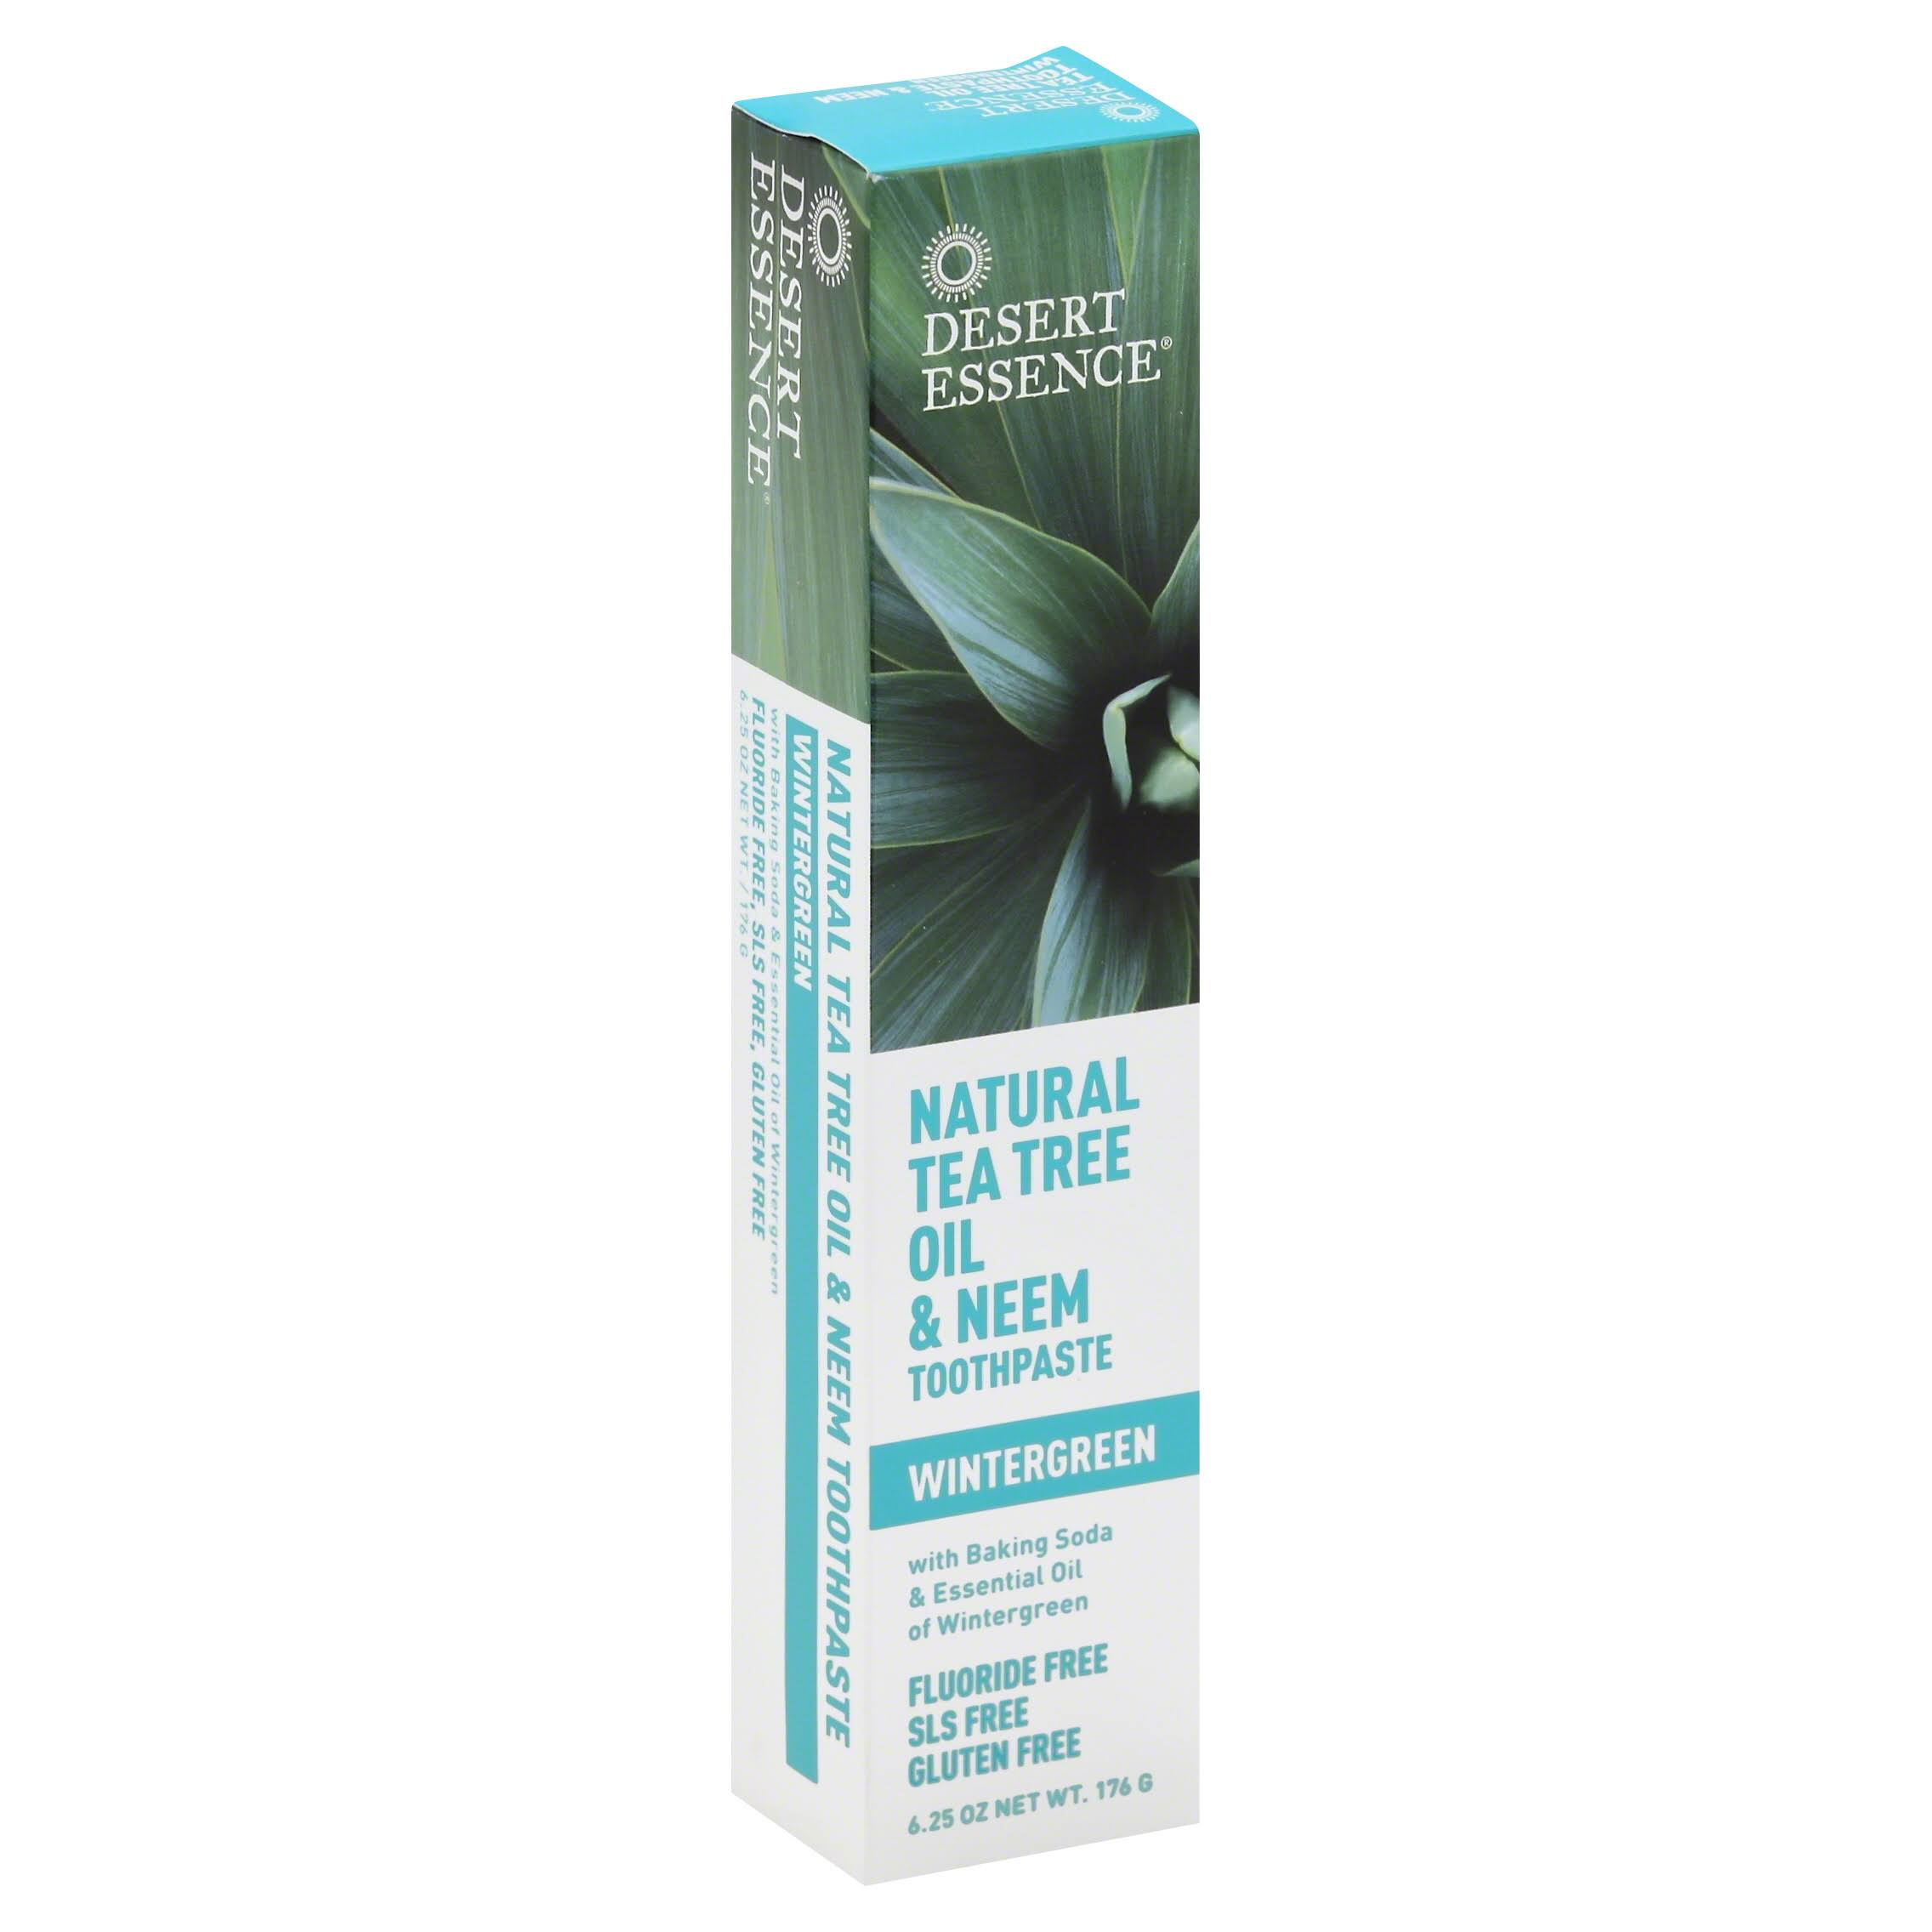 Desert Essence, Natural Tea Tree Oil & Neem Toothpaste